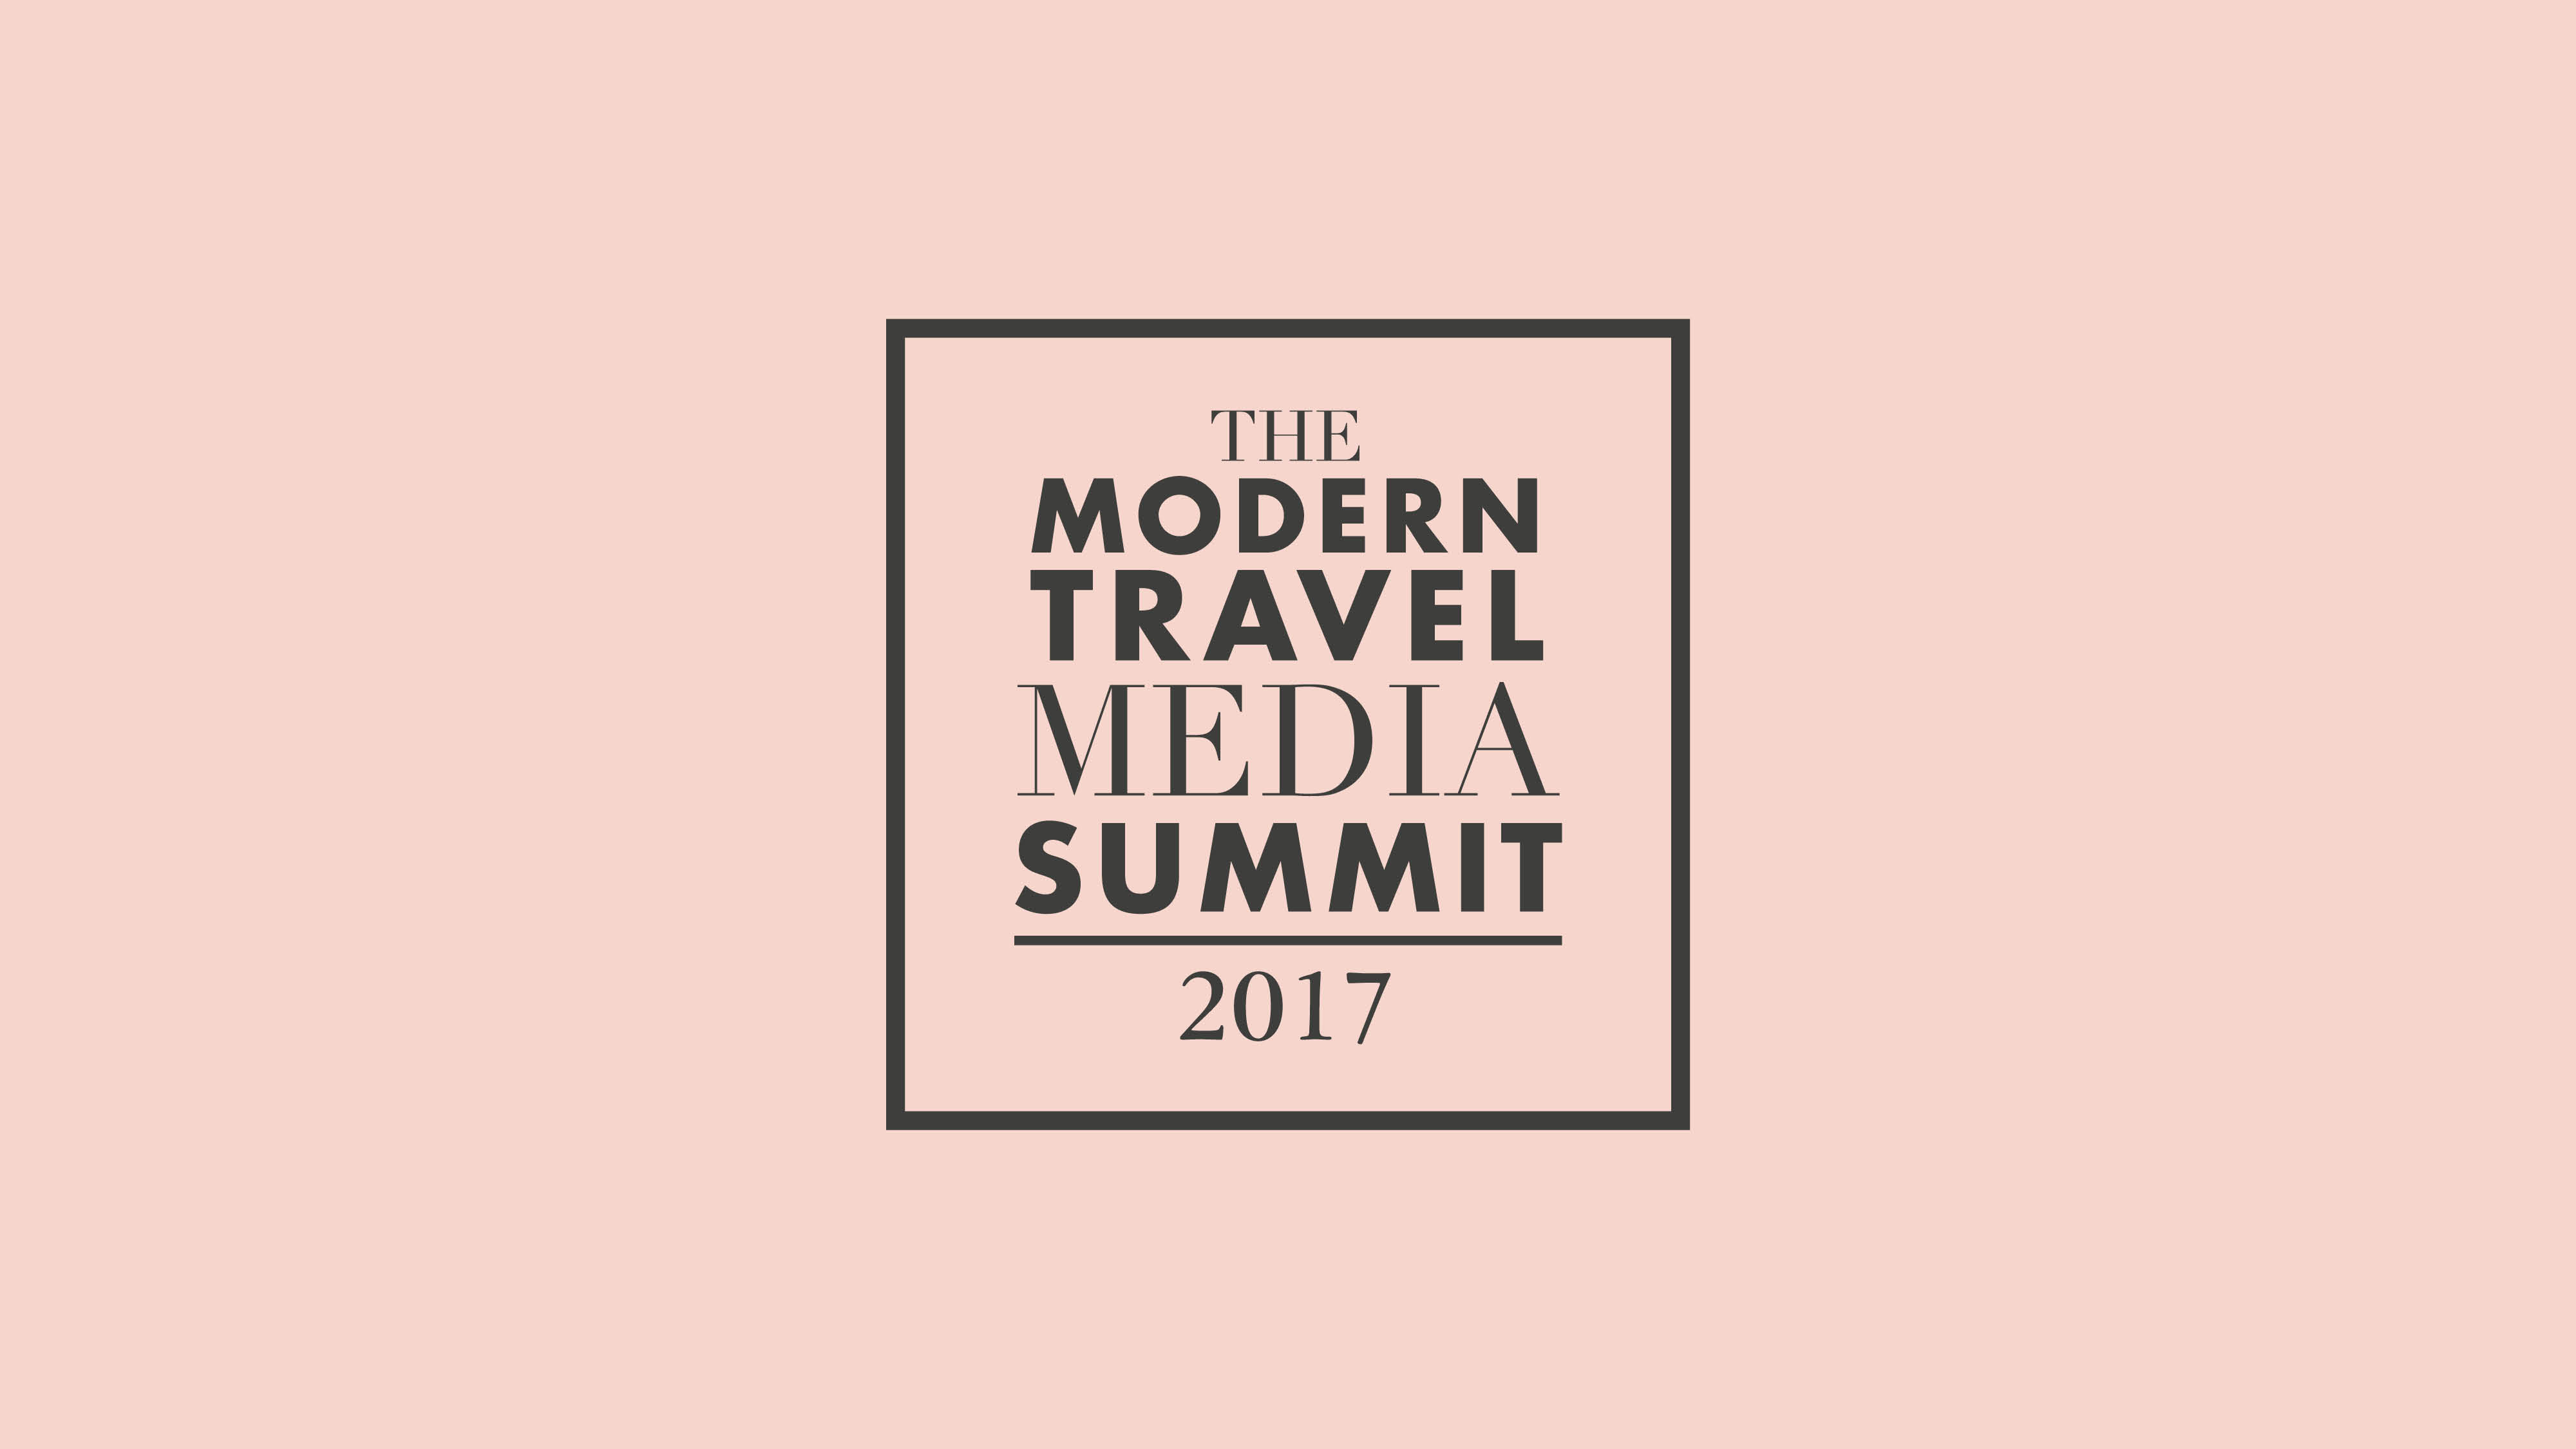 The Modern Travel Media Summit 2017 logo